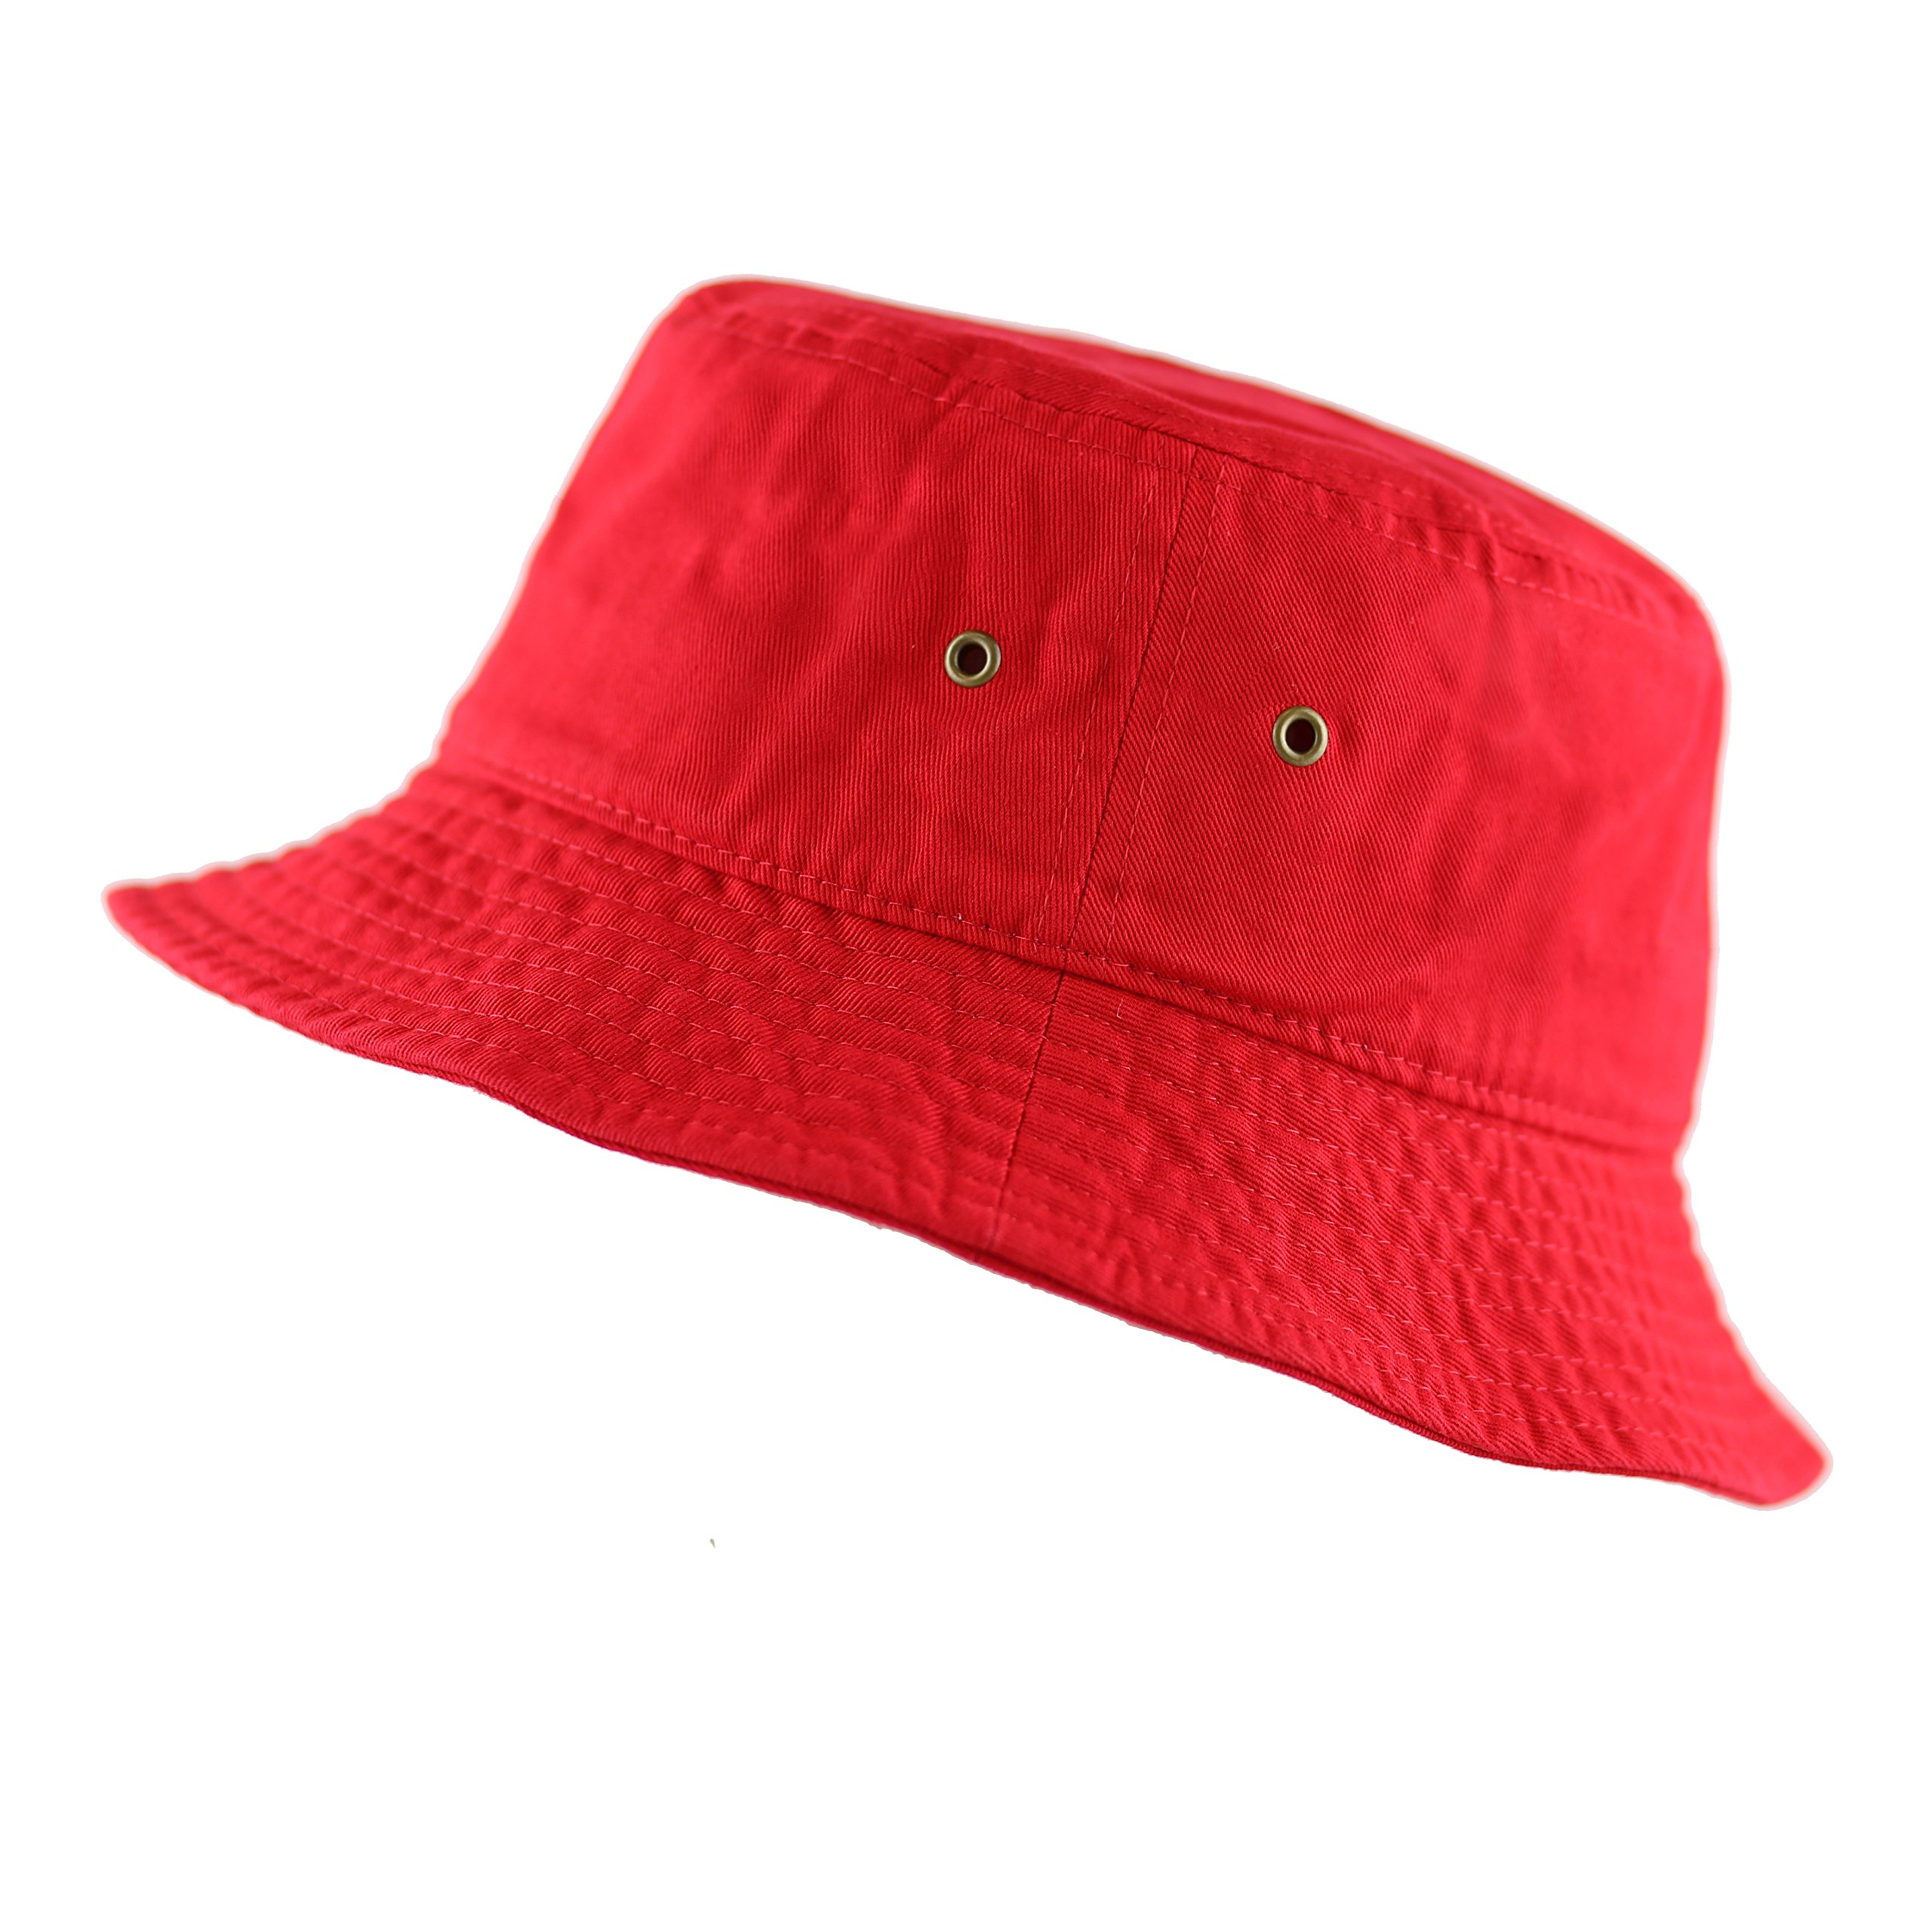 a724c8ed40 THE HAT DEPOT Youth Kids Washed Cotton Packable Bucket Travel Hat Cap  product image